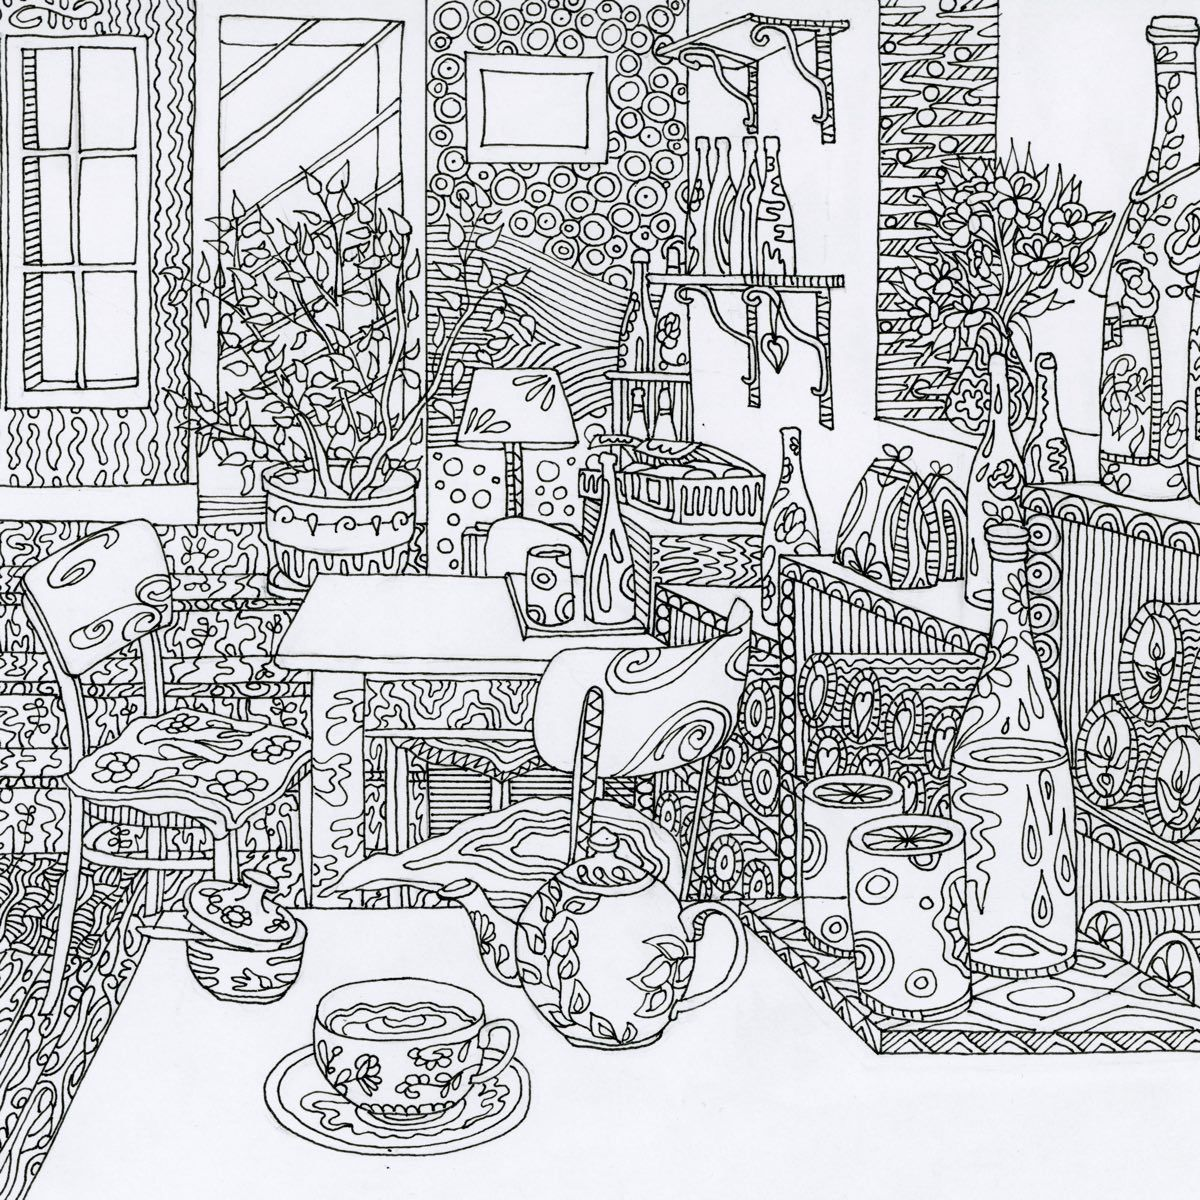 Download black and white illustration to colour in - cafe interior theme